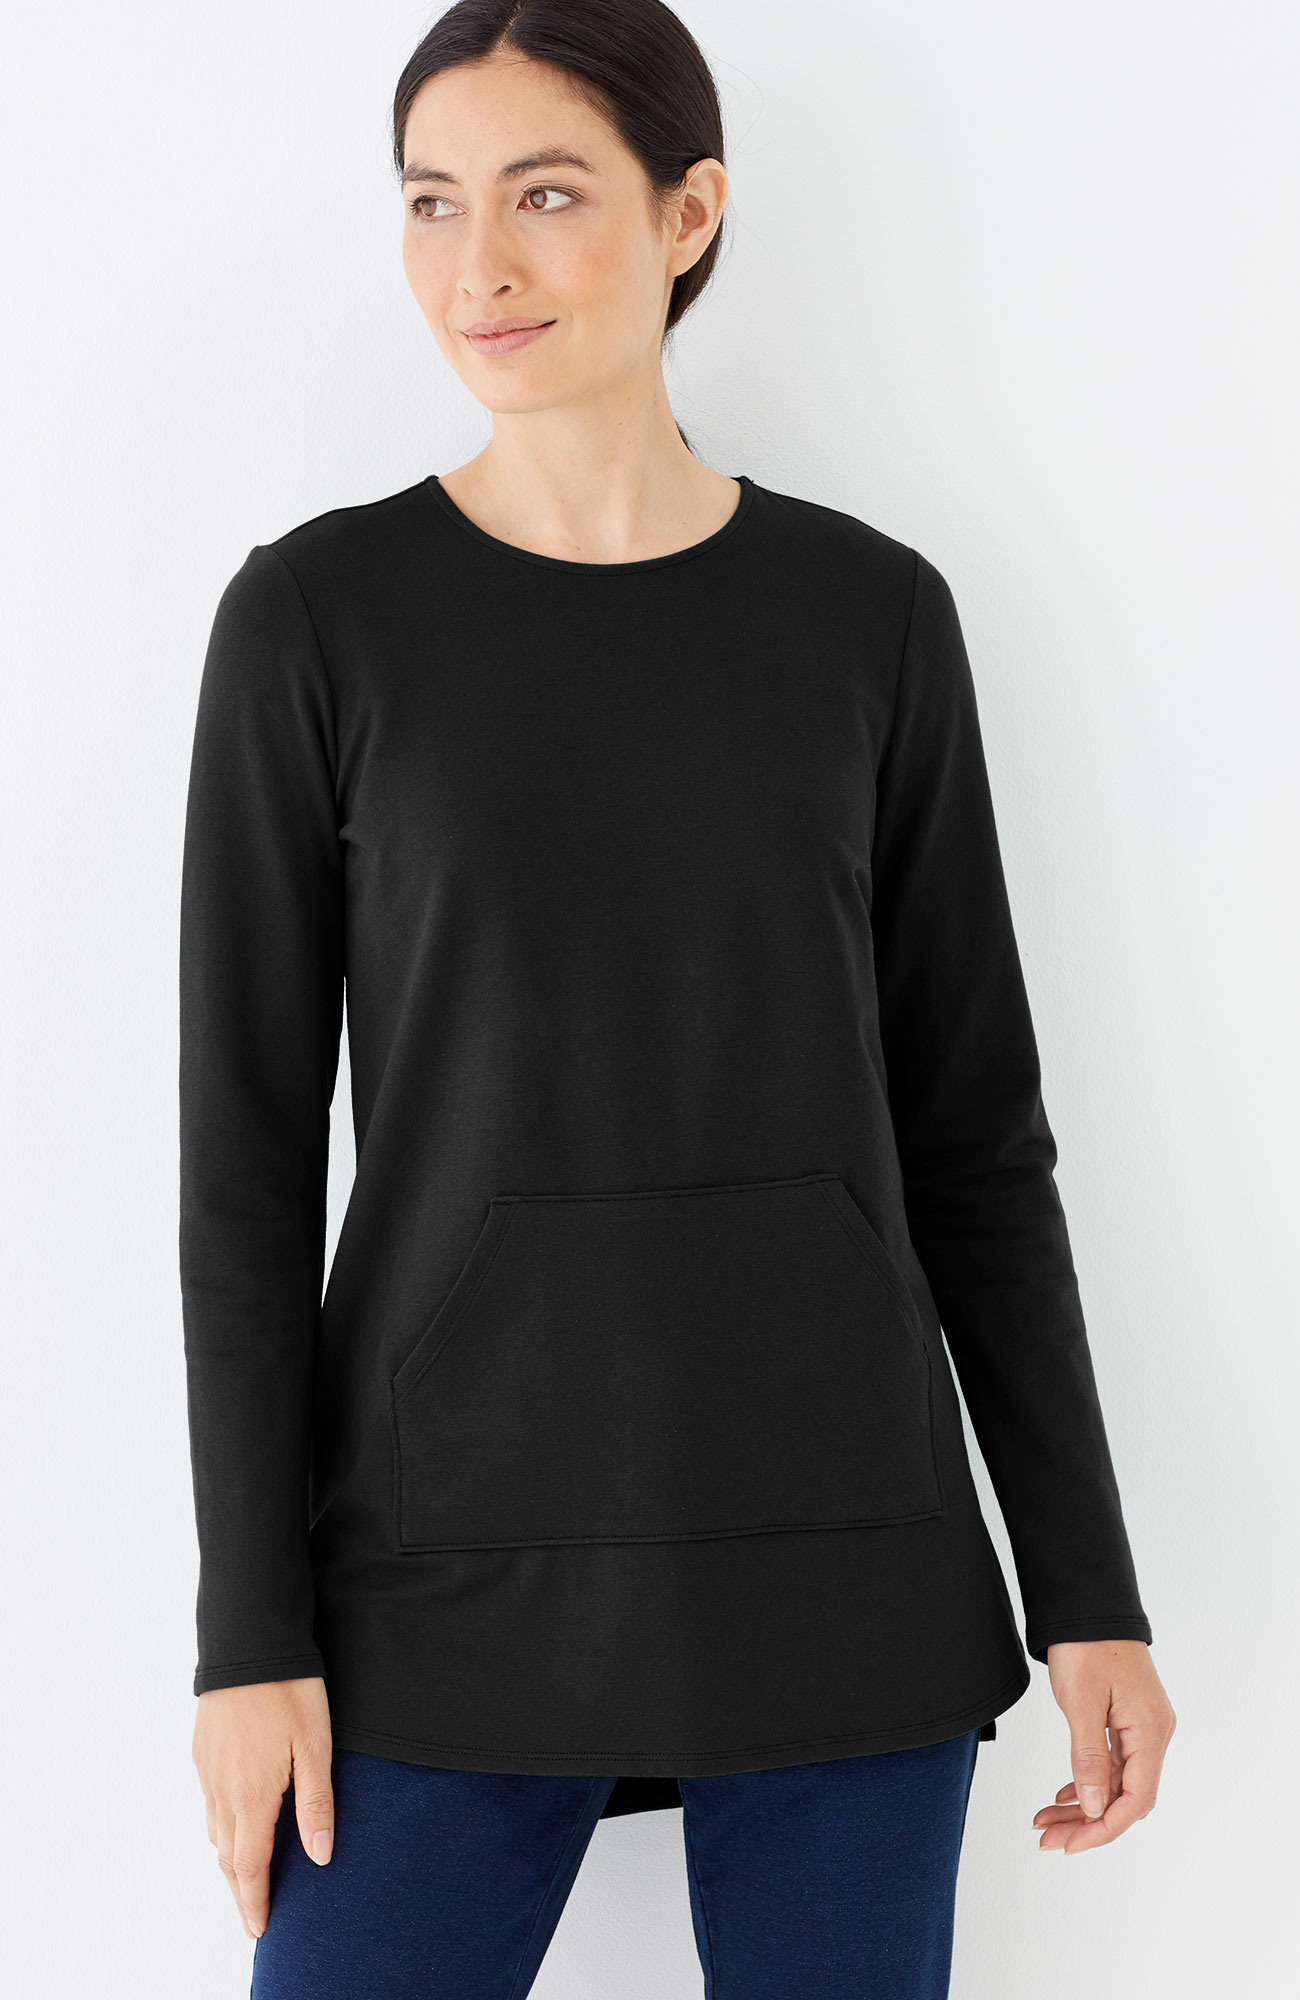 Pure Jill relaxed high-low tunic